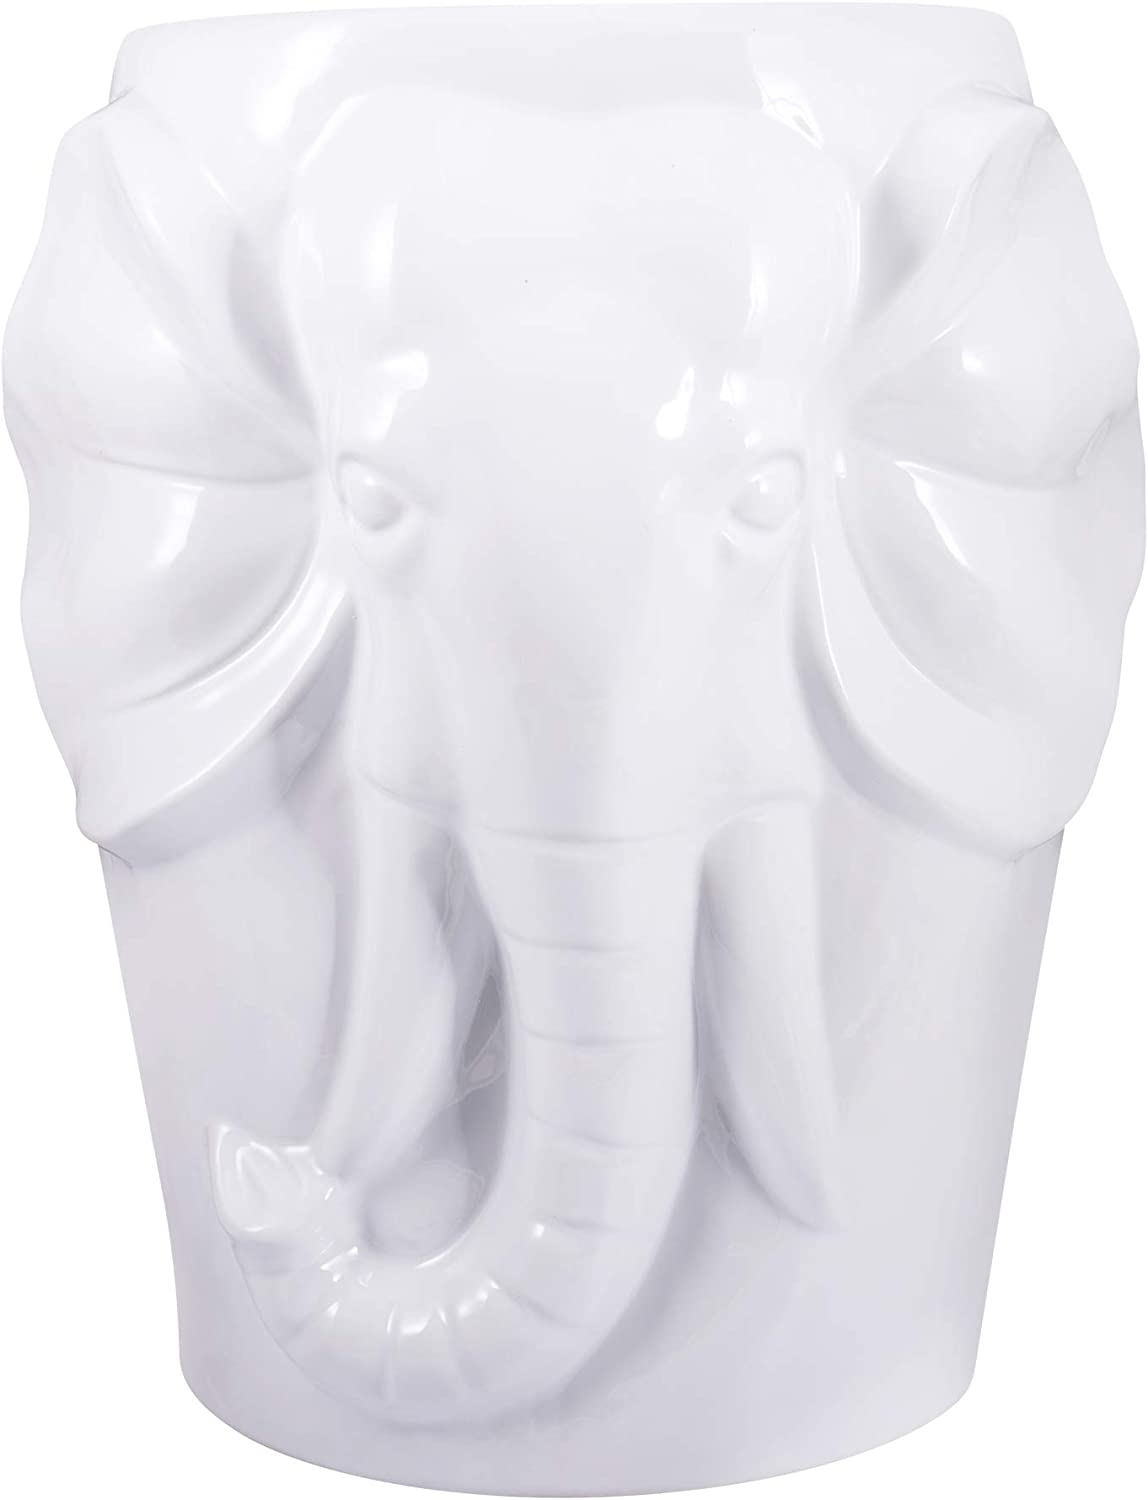 fanquare Elephant Ceramic Decorative Garden Stool,Animal Stool,White,17""